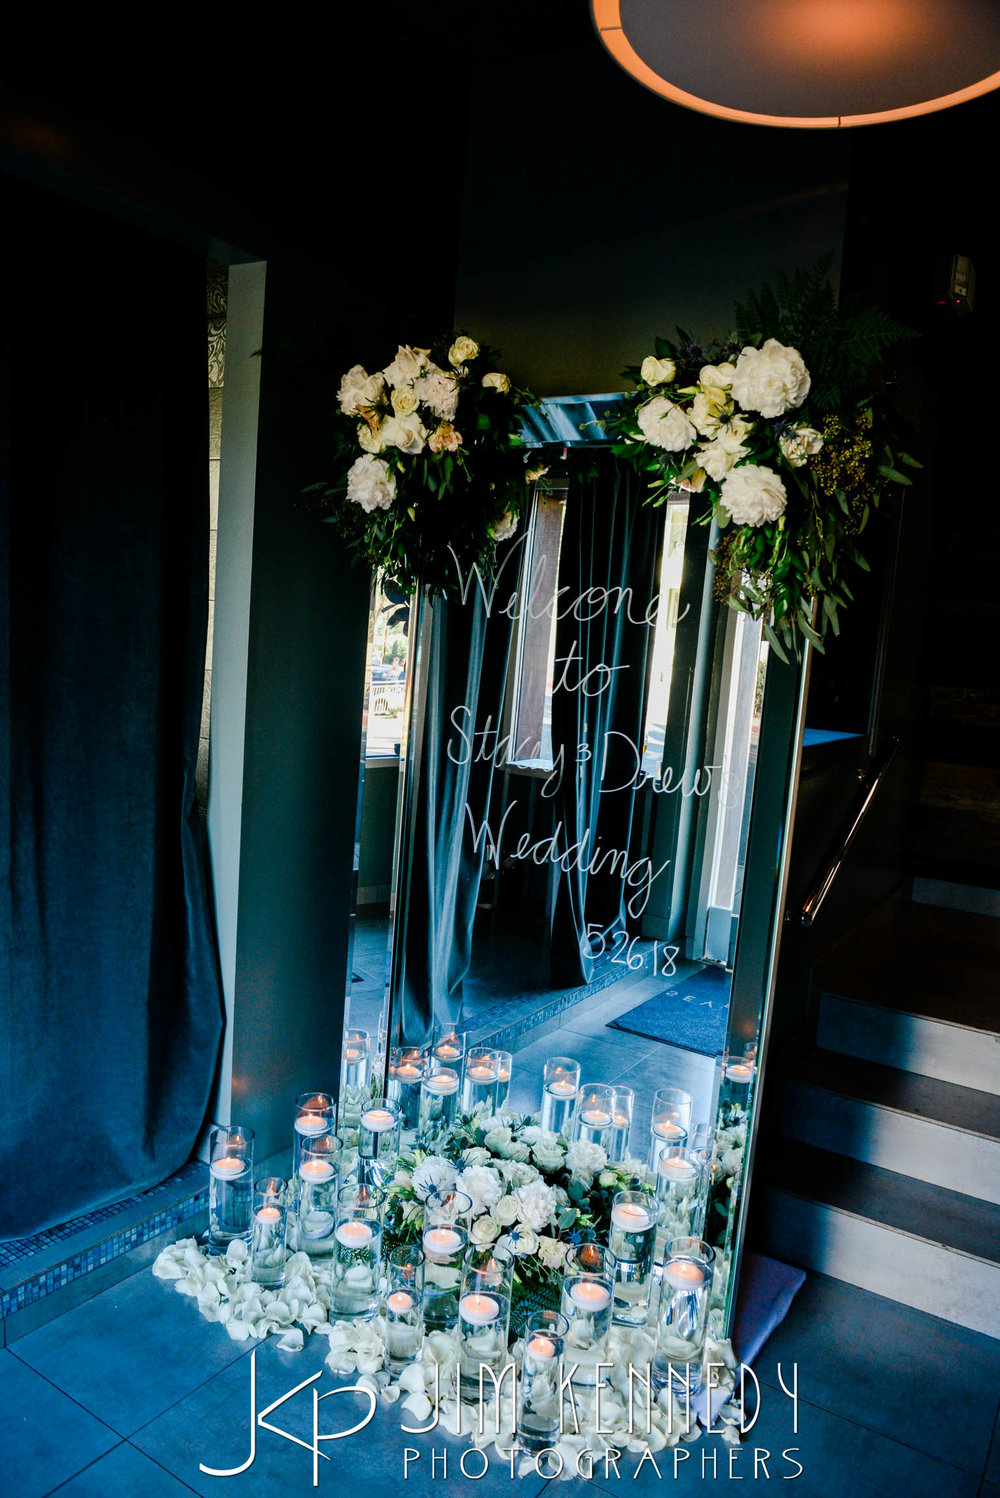 seven_4_one_laguna_beach_wedding_0123.JPG